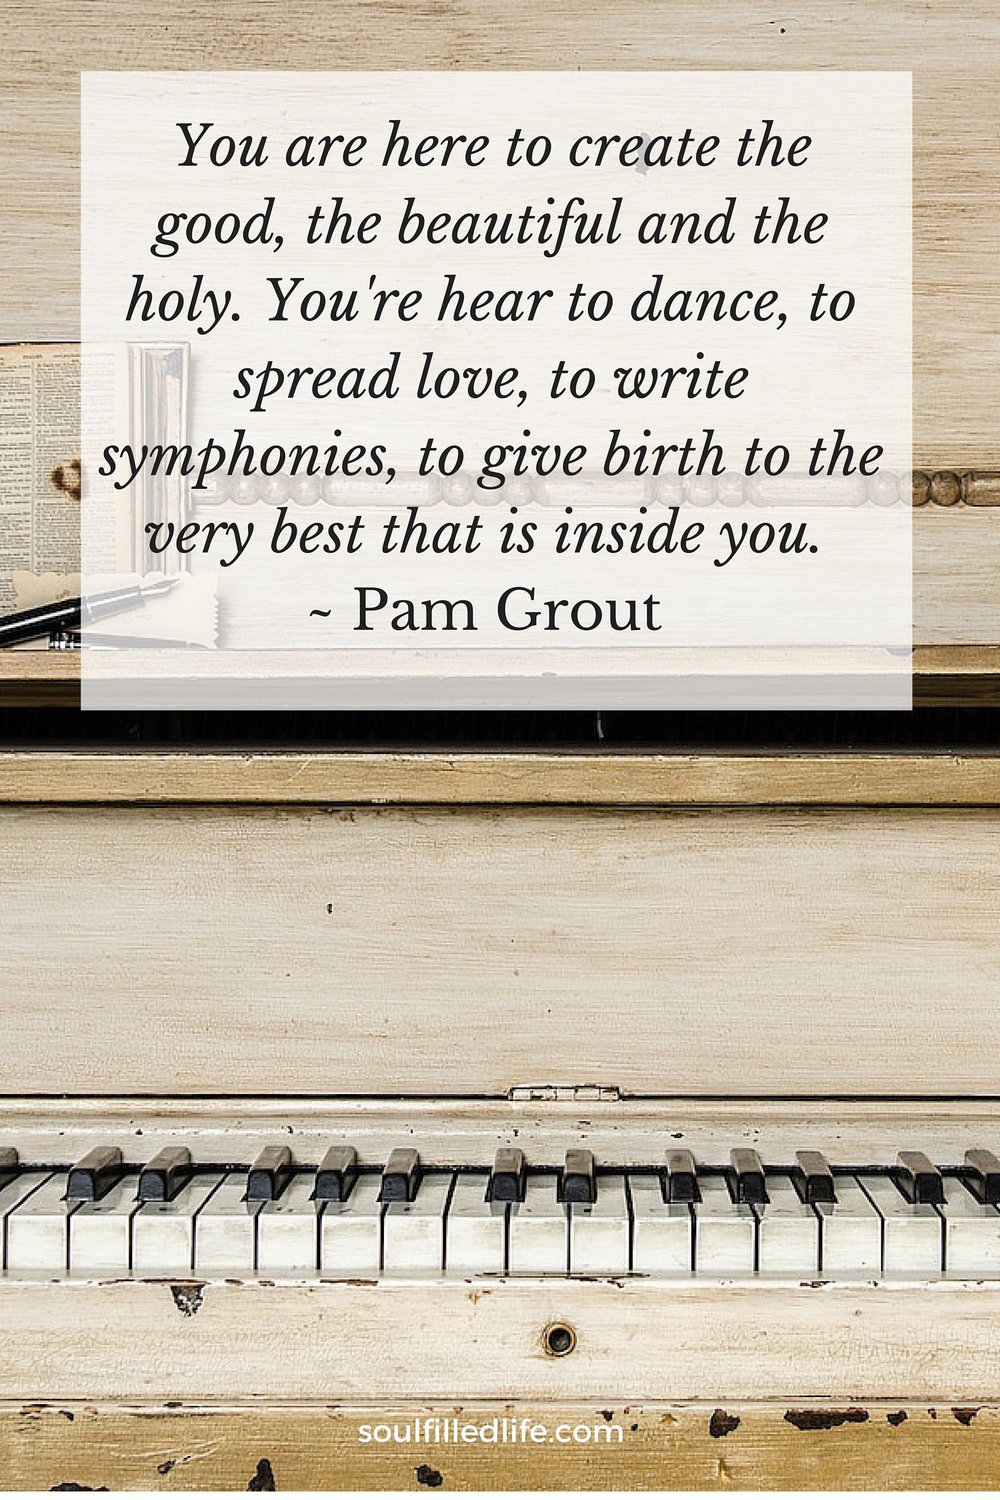 Pam Grout - Piano.jpg